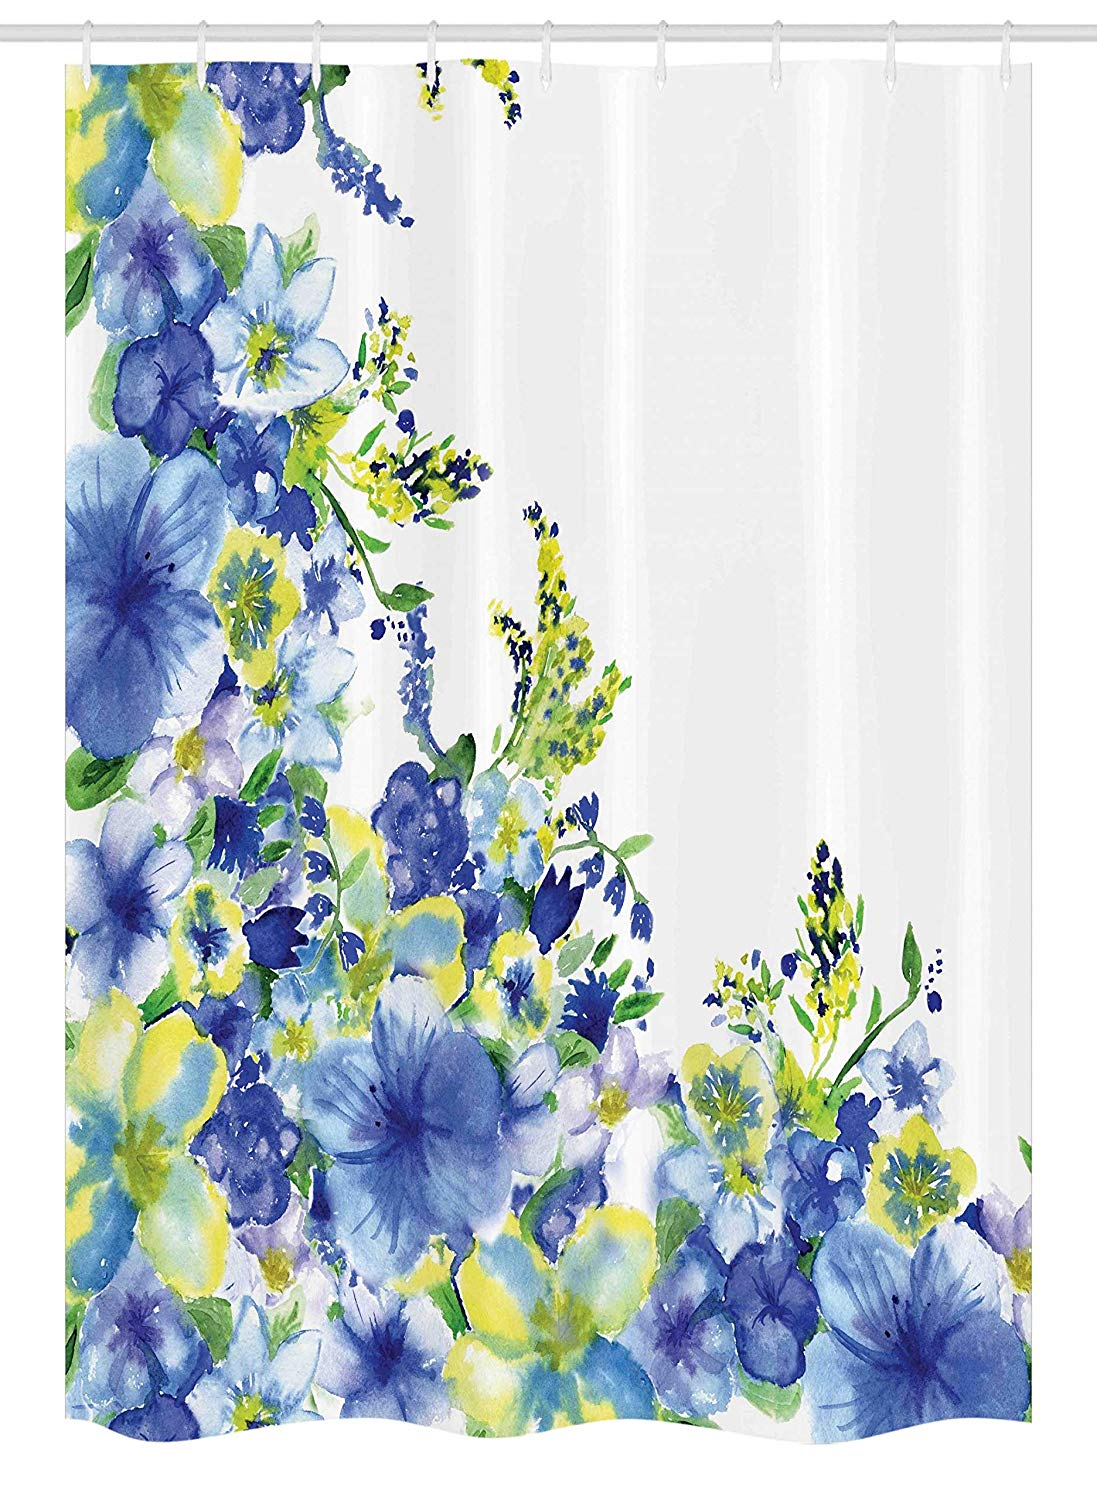 "Ambesonne Watercolor Flower Stall Shower Curtain, Motley Floret Motifs with Splash Anemone Iris Revival of Nature Theme, Fabric Bathroom Decor Set with Hooks, 54"" X 78"", Blue Yellow"